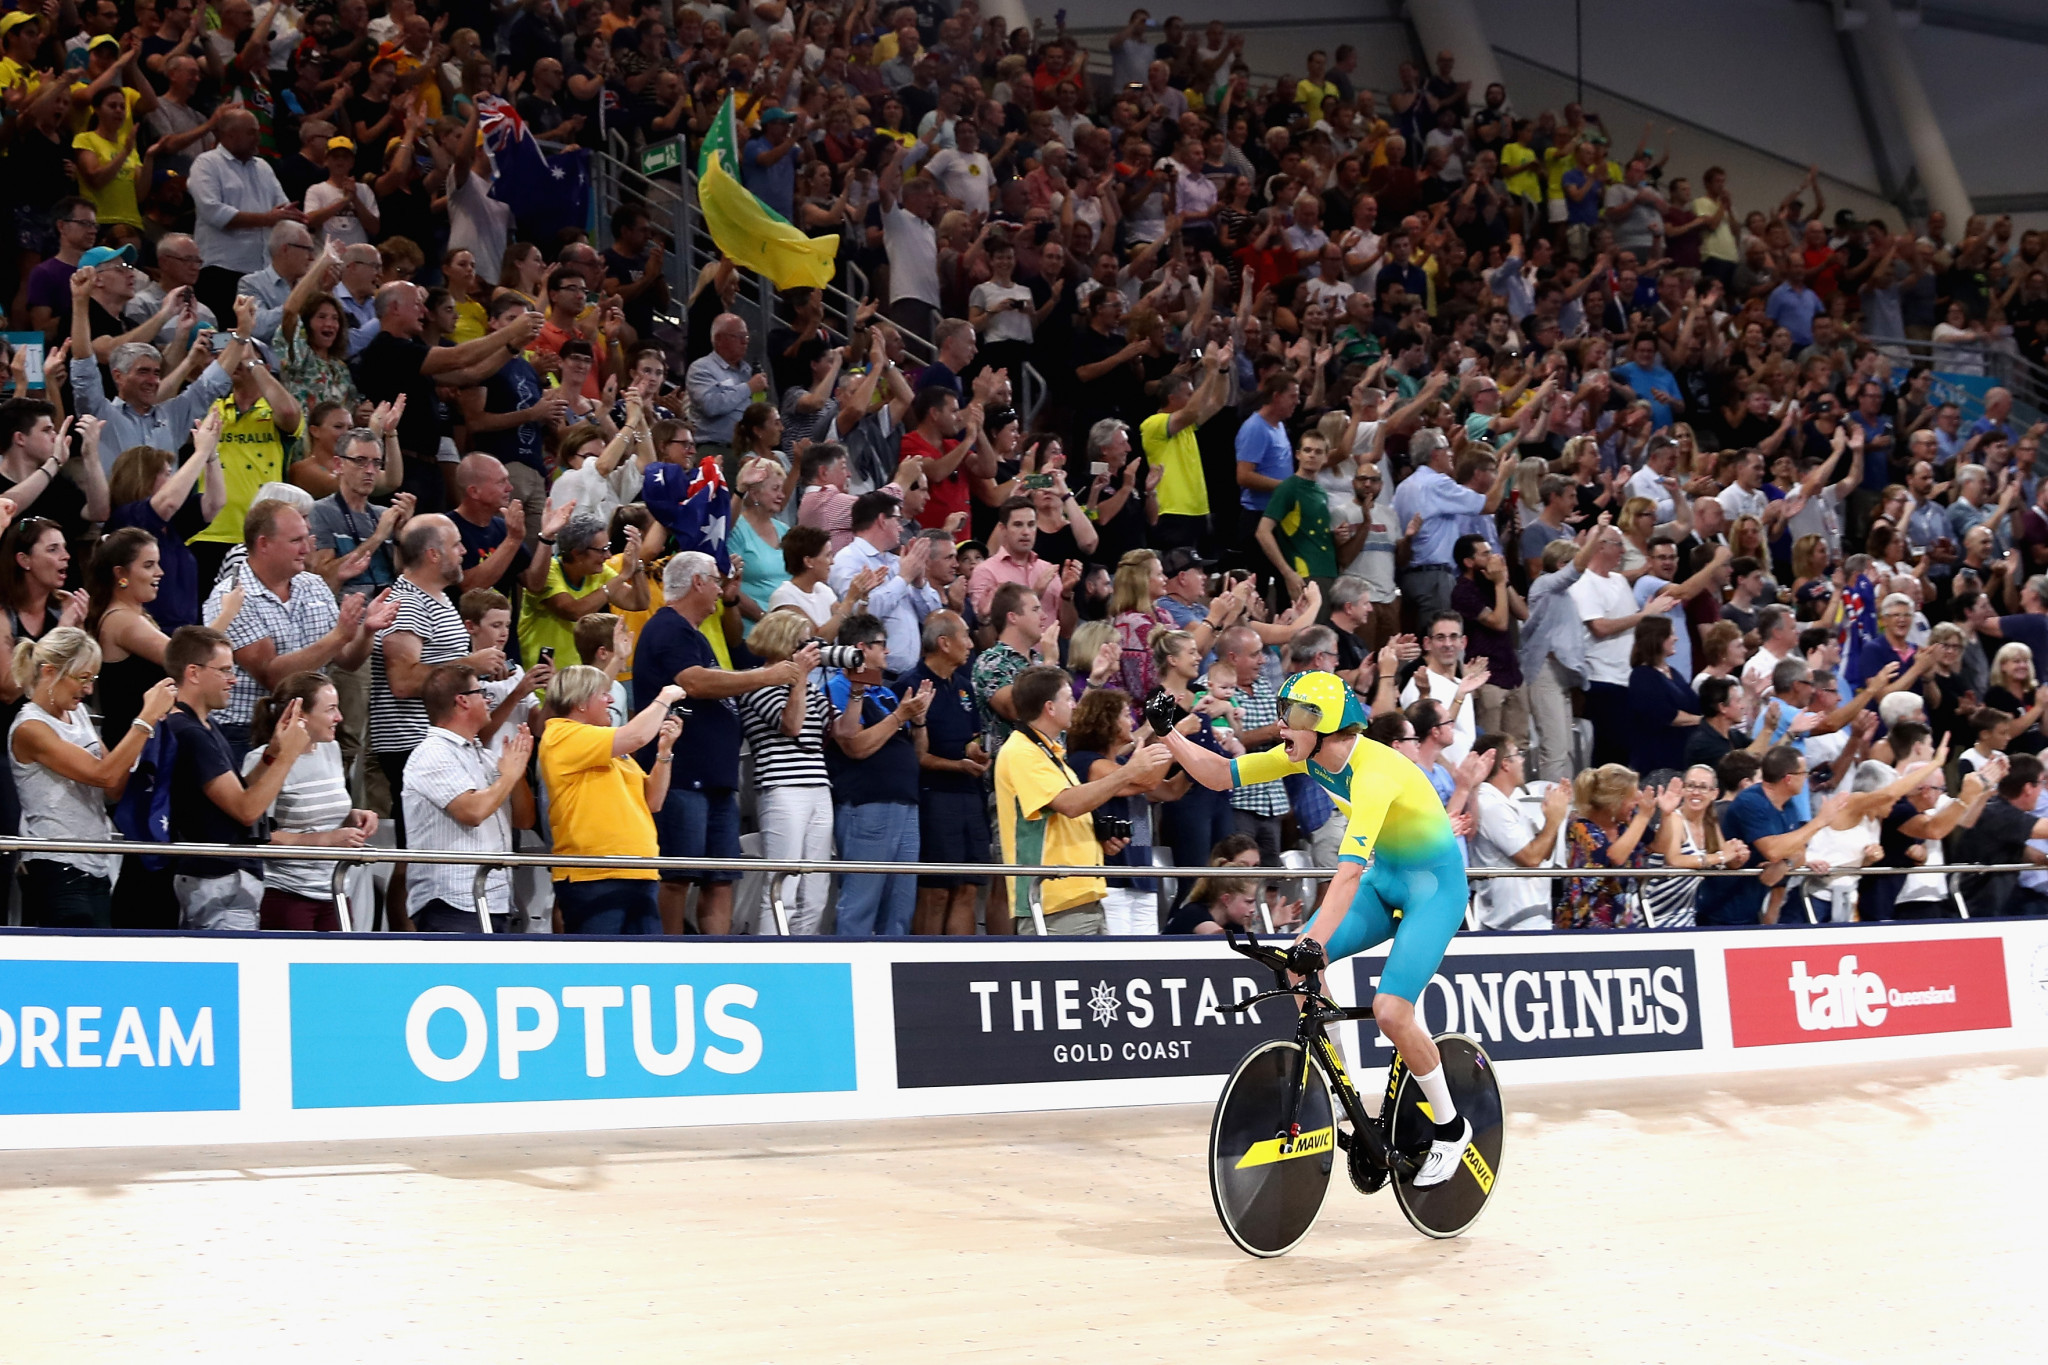 Men's team pursuit world record falls as Australians star on opening night of Gold Coast 2018 track cycling action